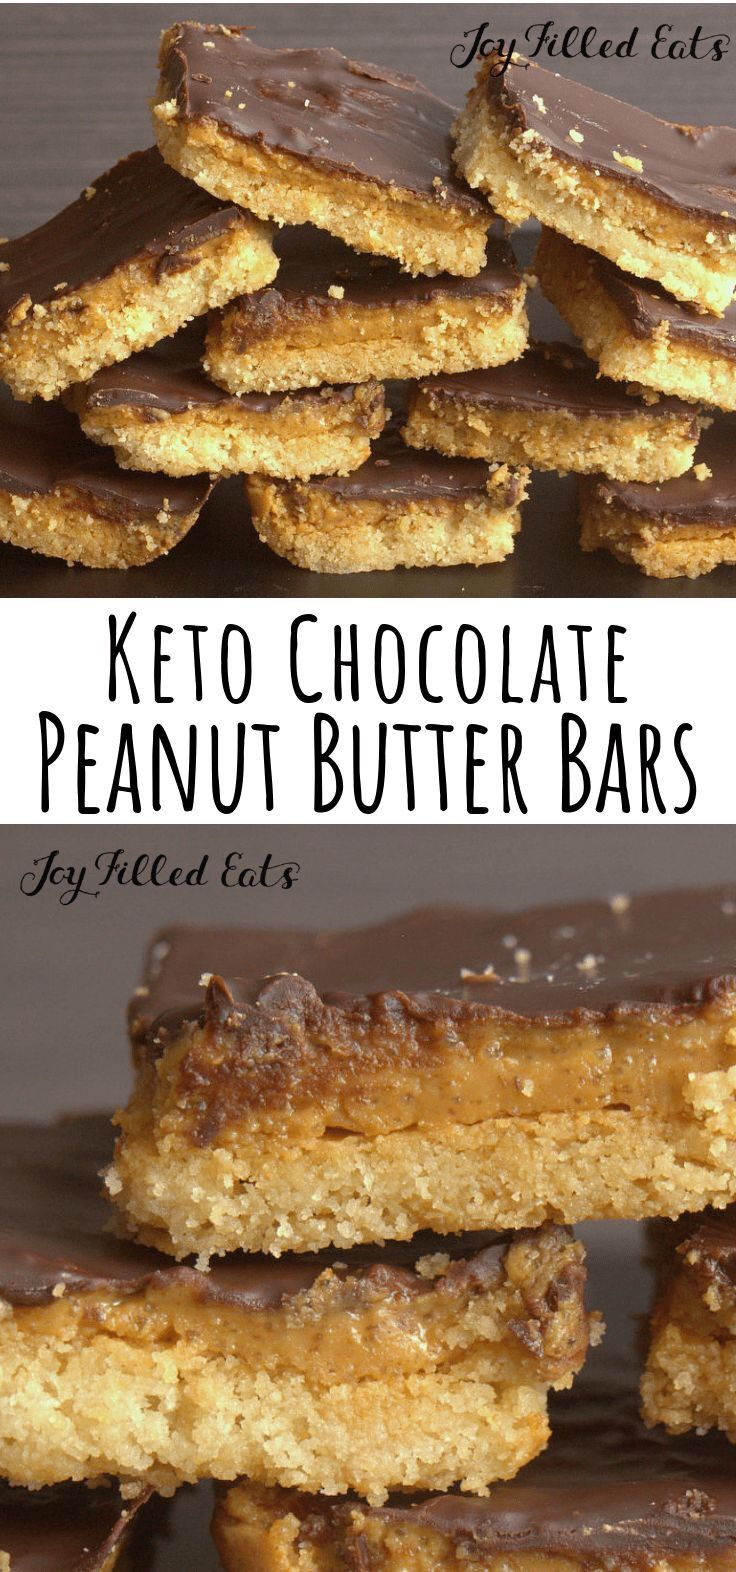 42 Best Low Carb Keto Chocolate Dessert Recipes to Satisfy Your Sweet Tooth